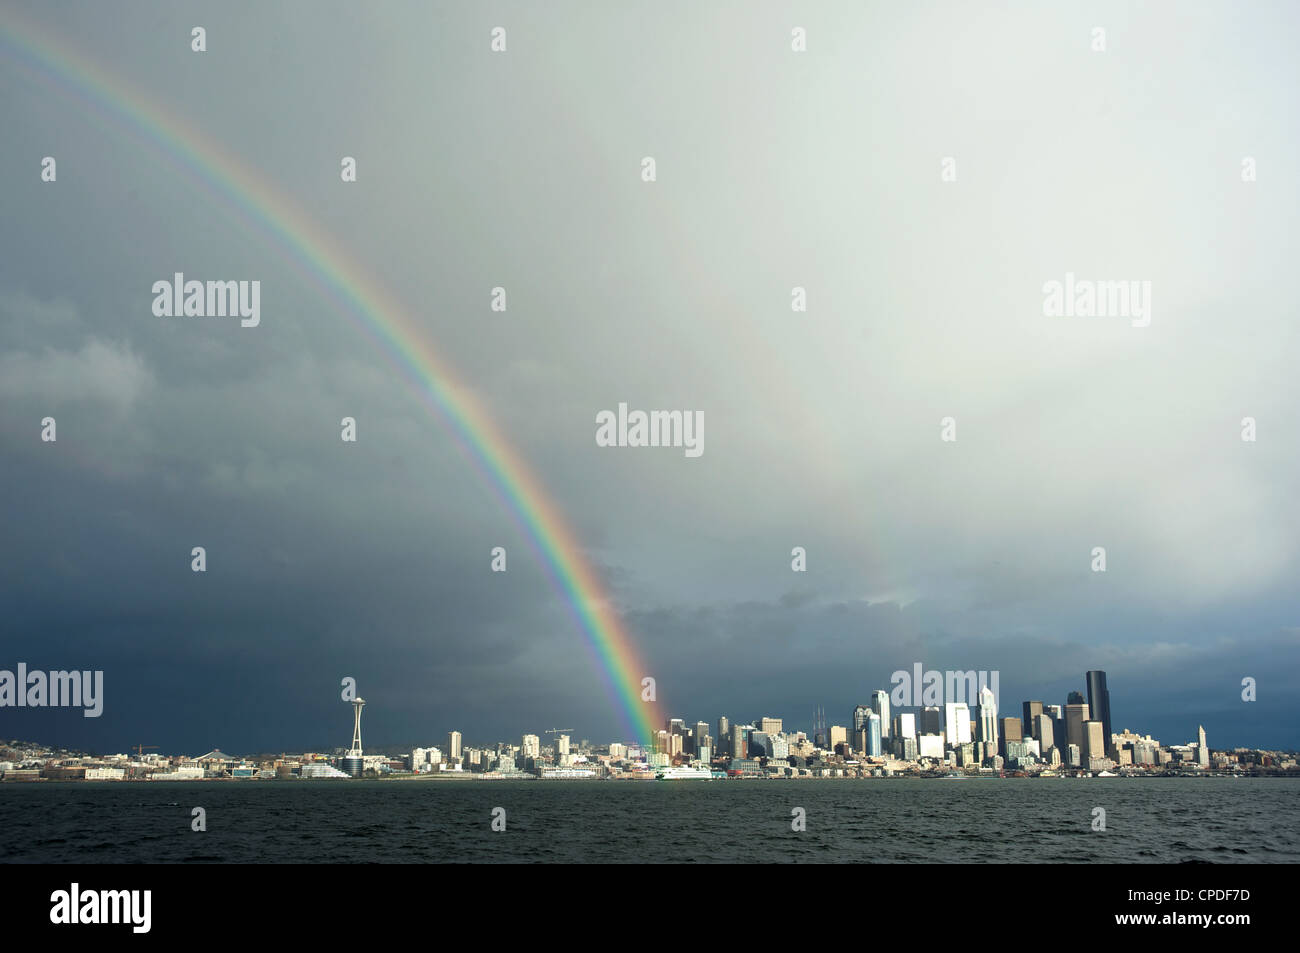 Washington State Ferry in the Puget Sound with the Seattle skyline in the background, Seattle, Washington, USA - Stock Image